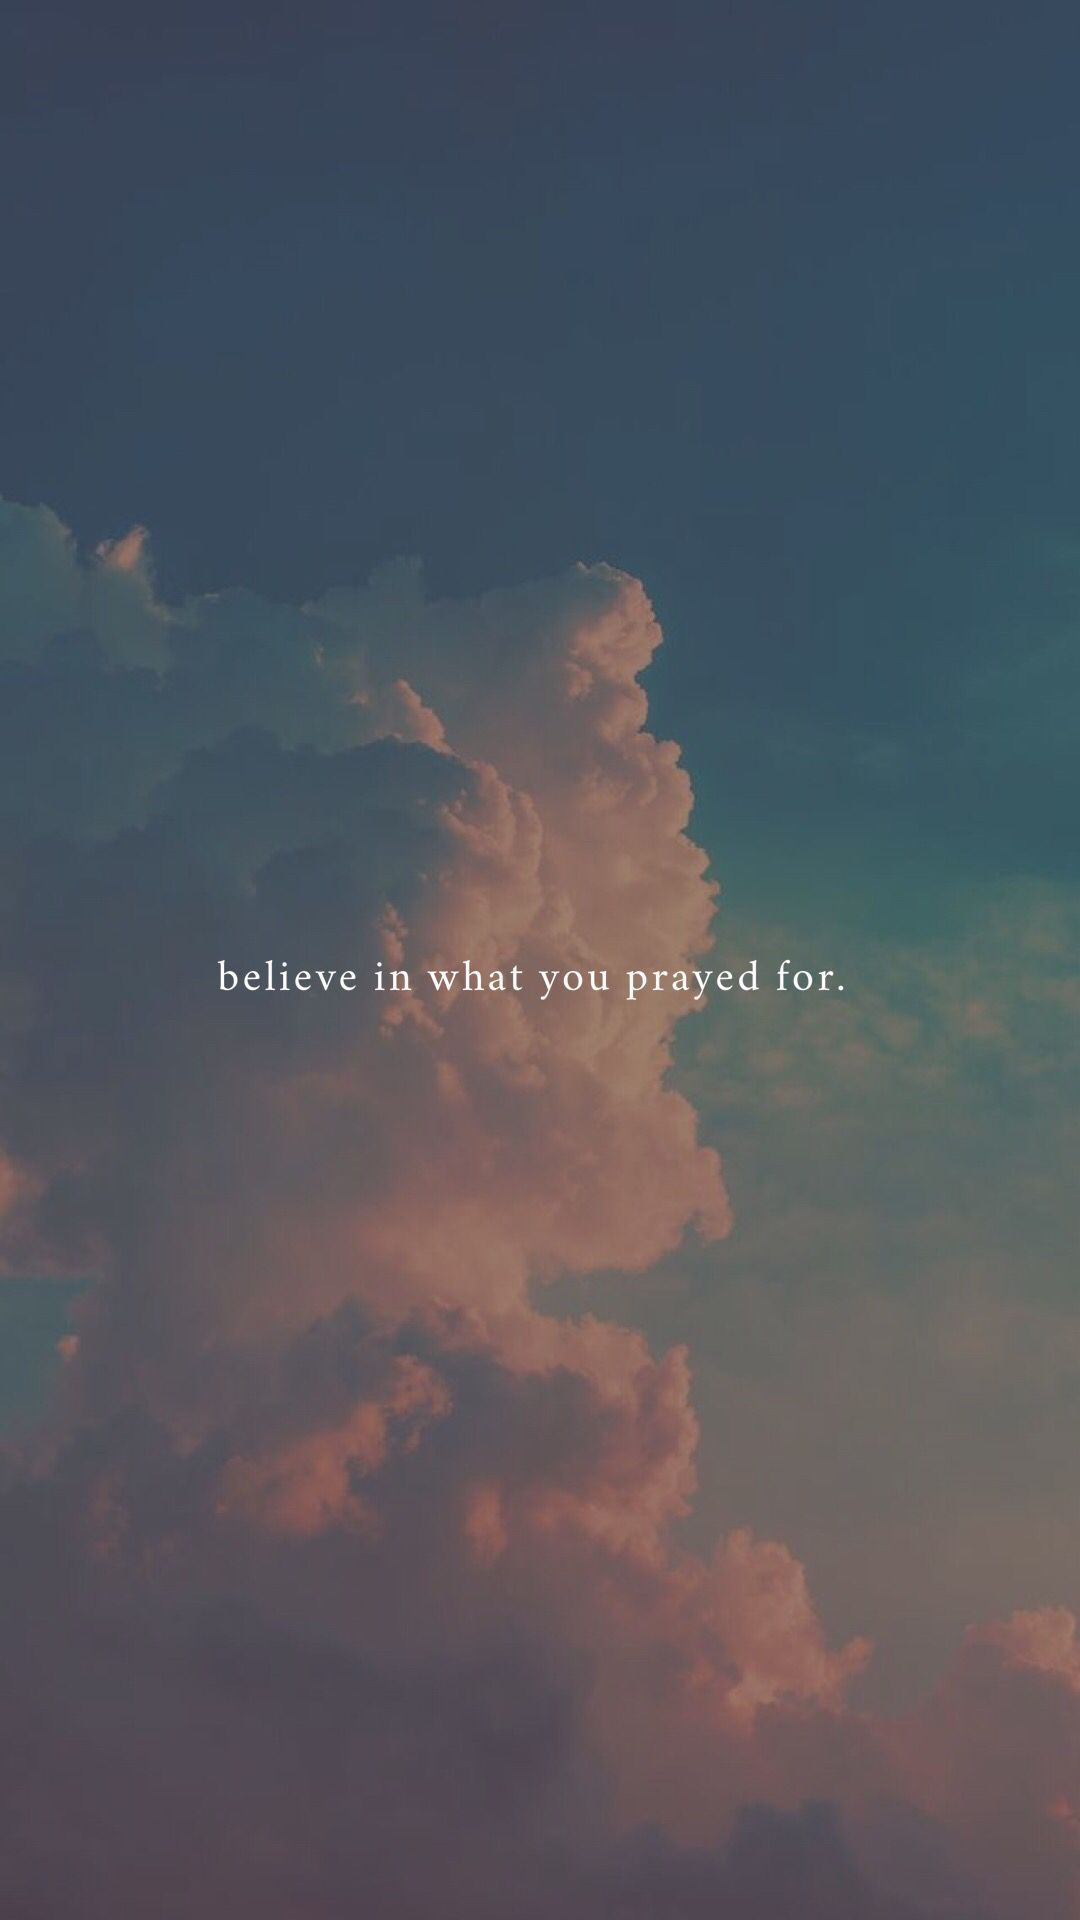 """Photo of """"believe in what you prayed for."""" #phonewallpaperquotes """"believe in what y…"""